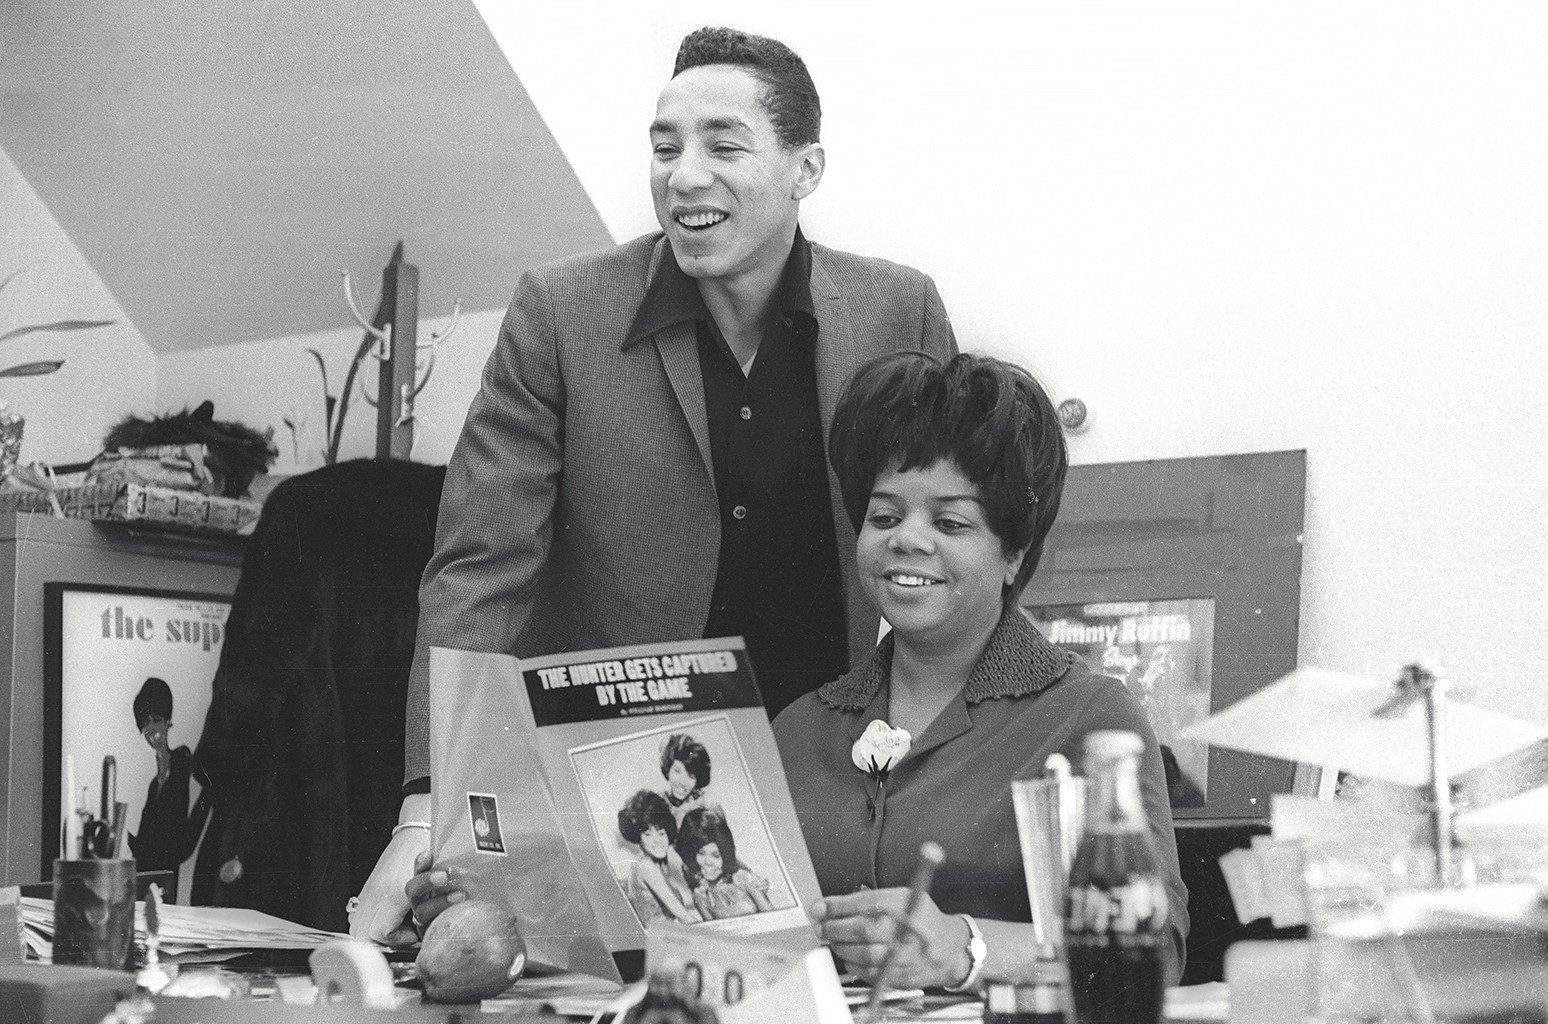 Robinson and Motown Records vice president Esther Gordy Edwards in Detroit in 1967.